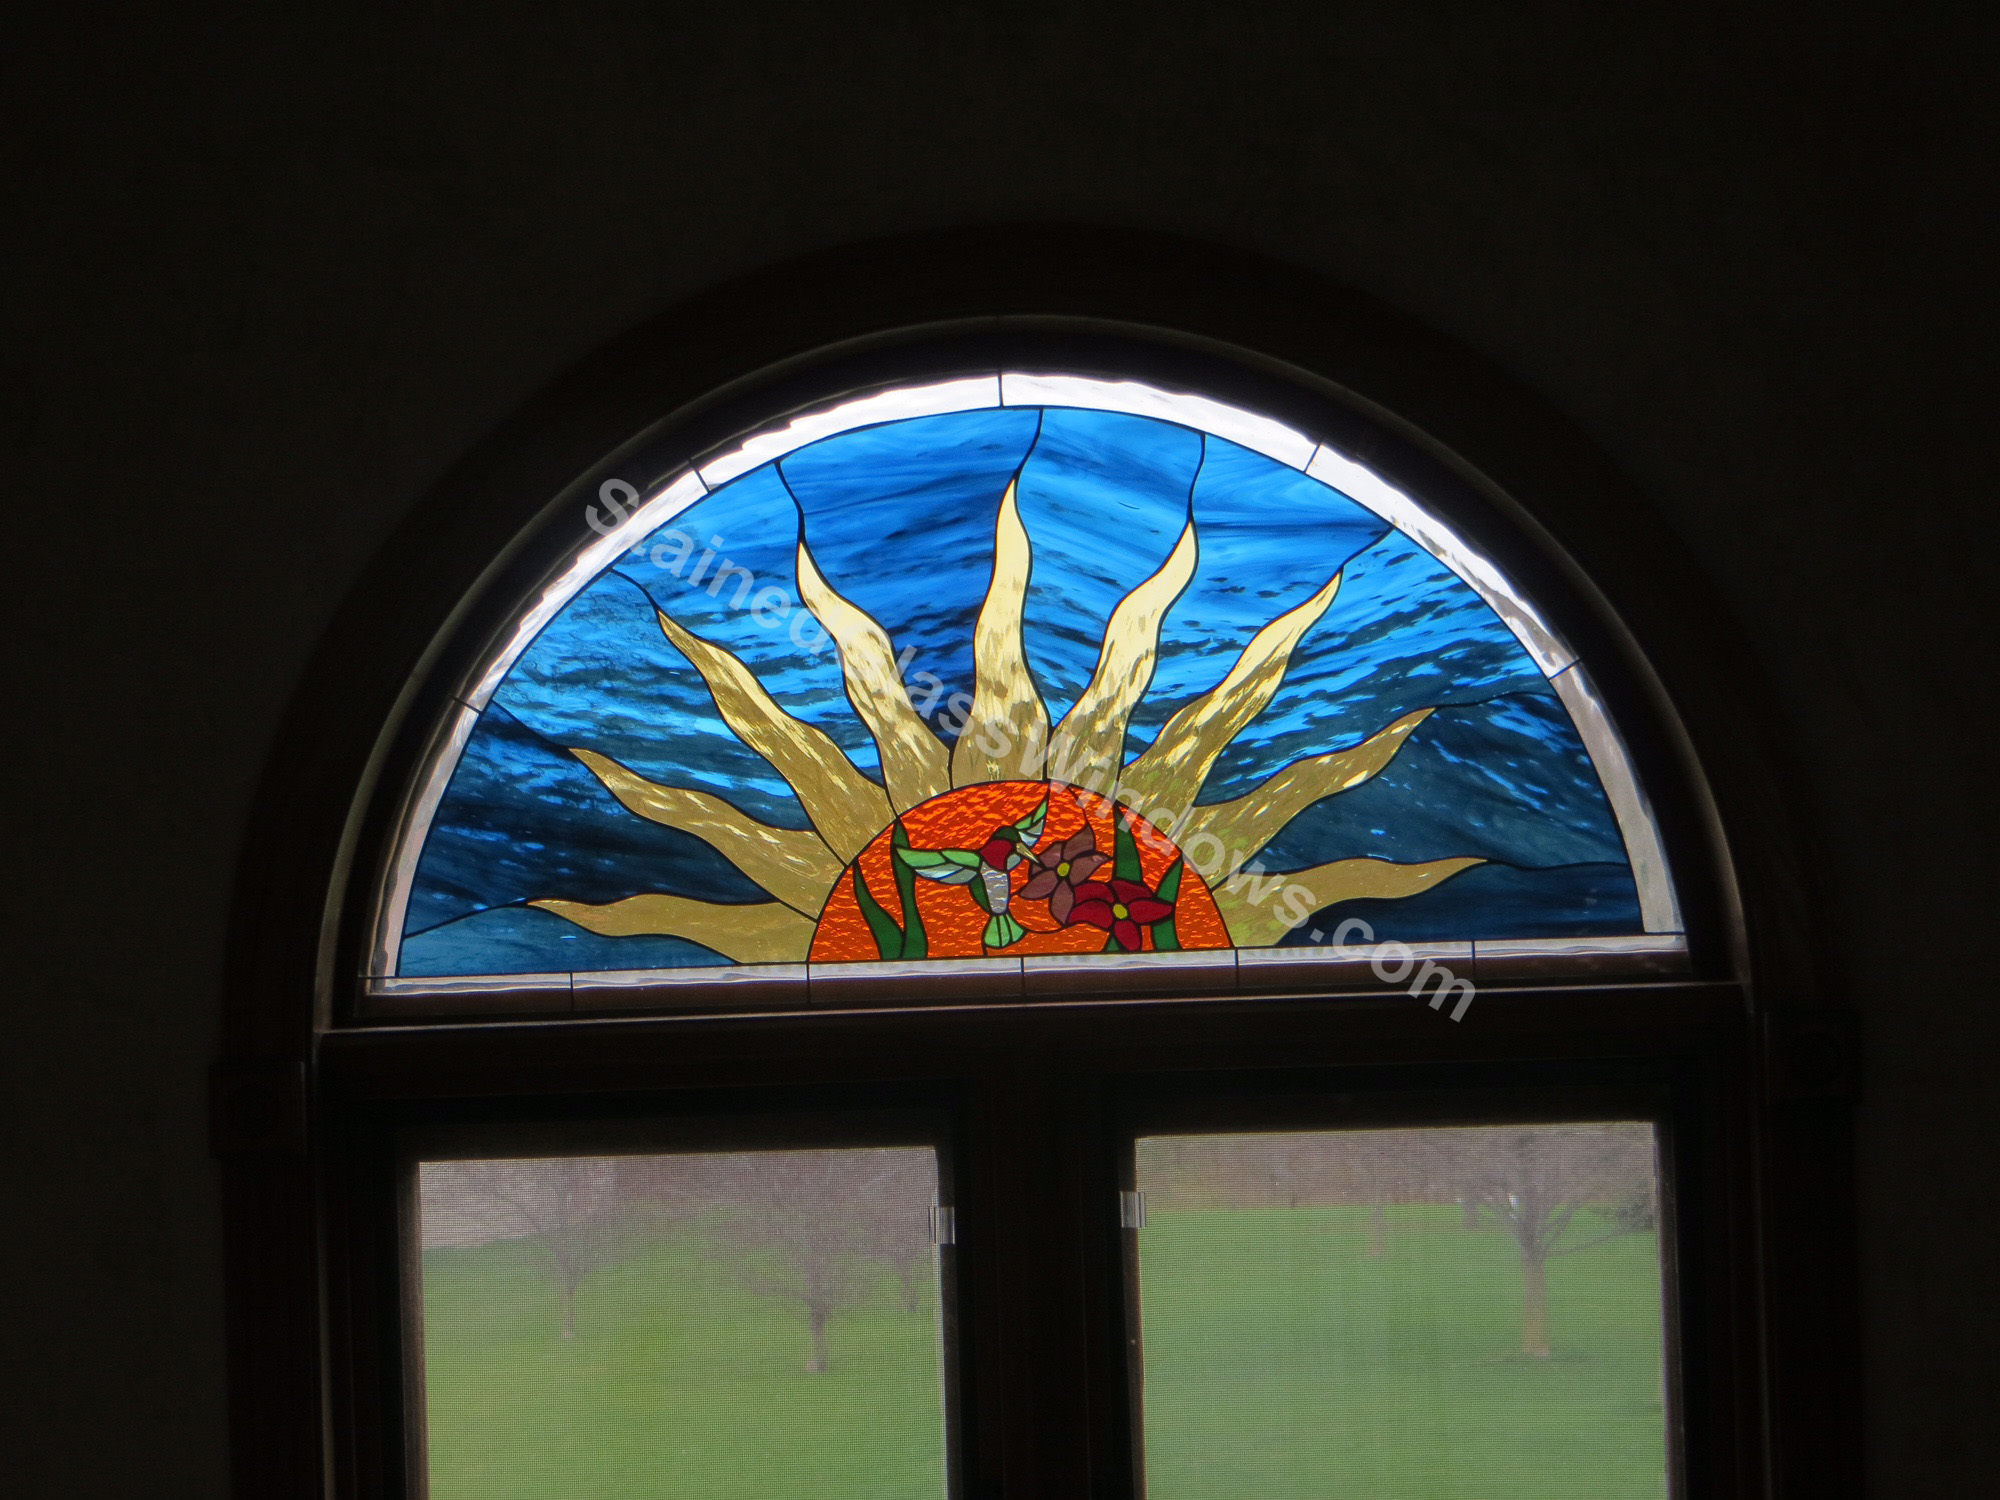 decorative glass window inserts. Custom Made Arched Stained Glass Window Insert Held In With Mirror Inserts  Designs